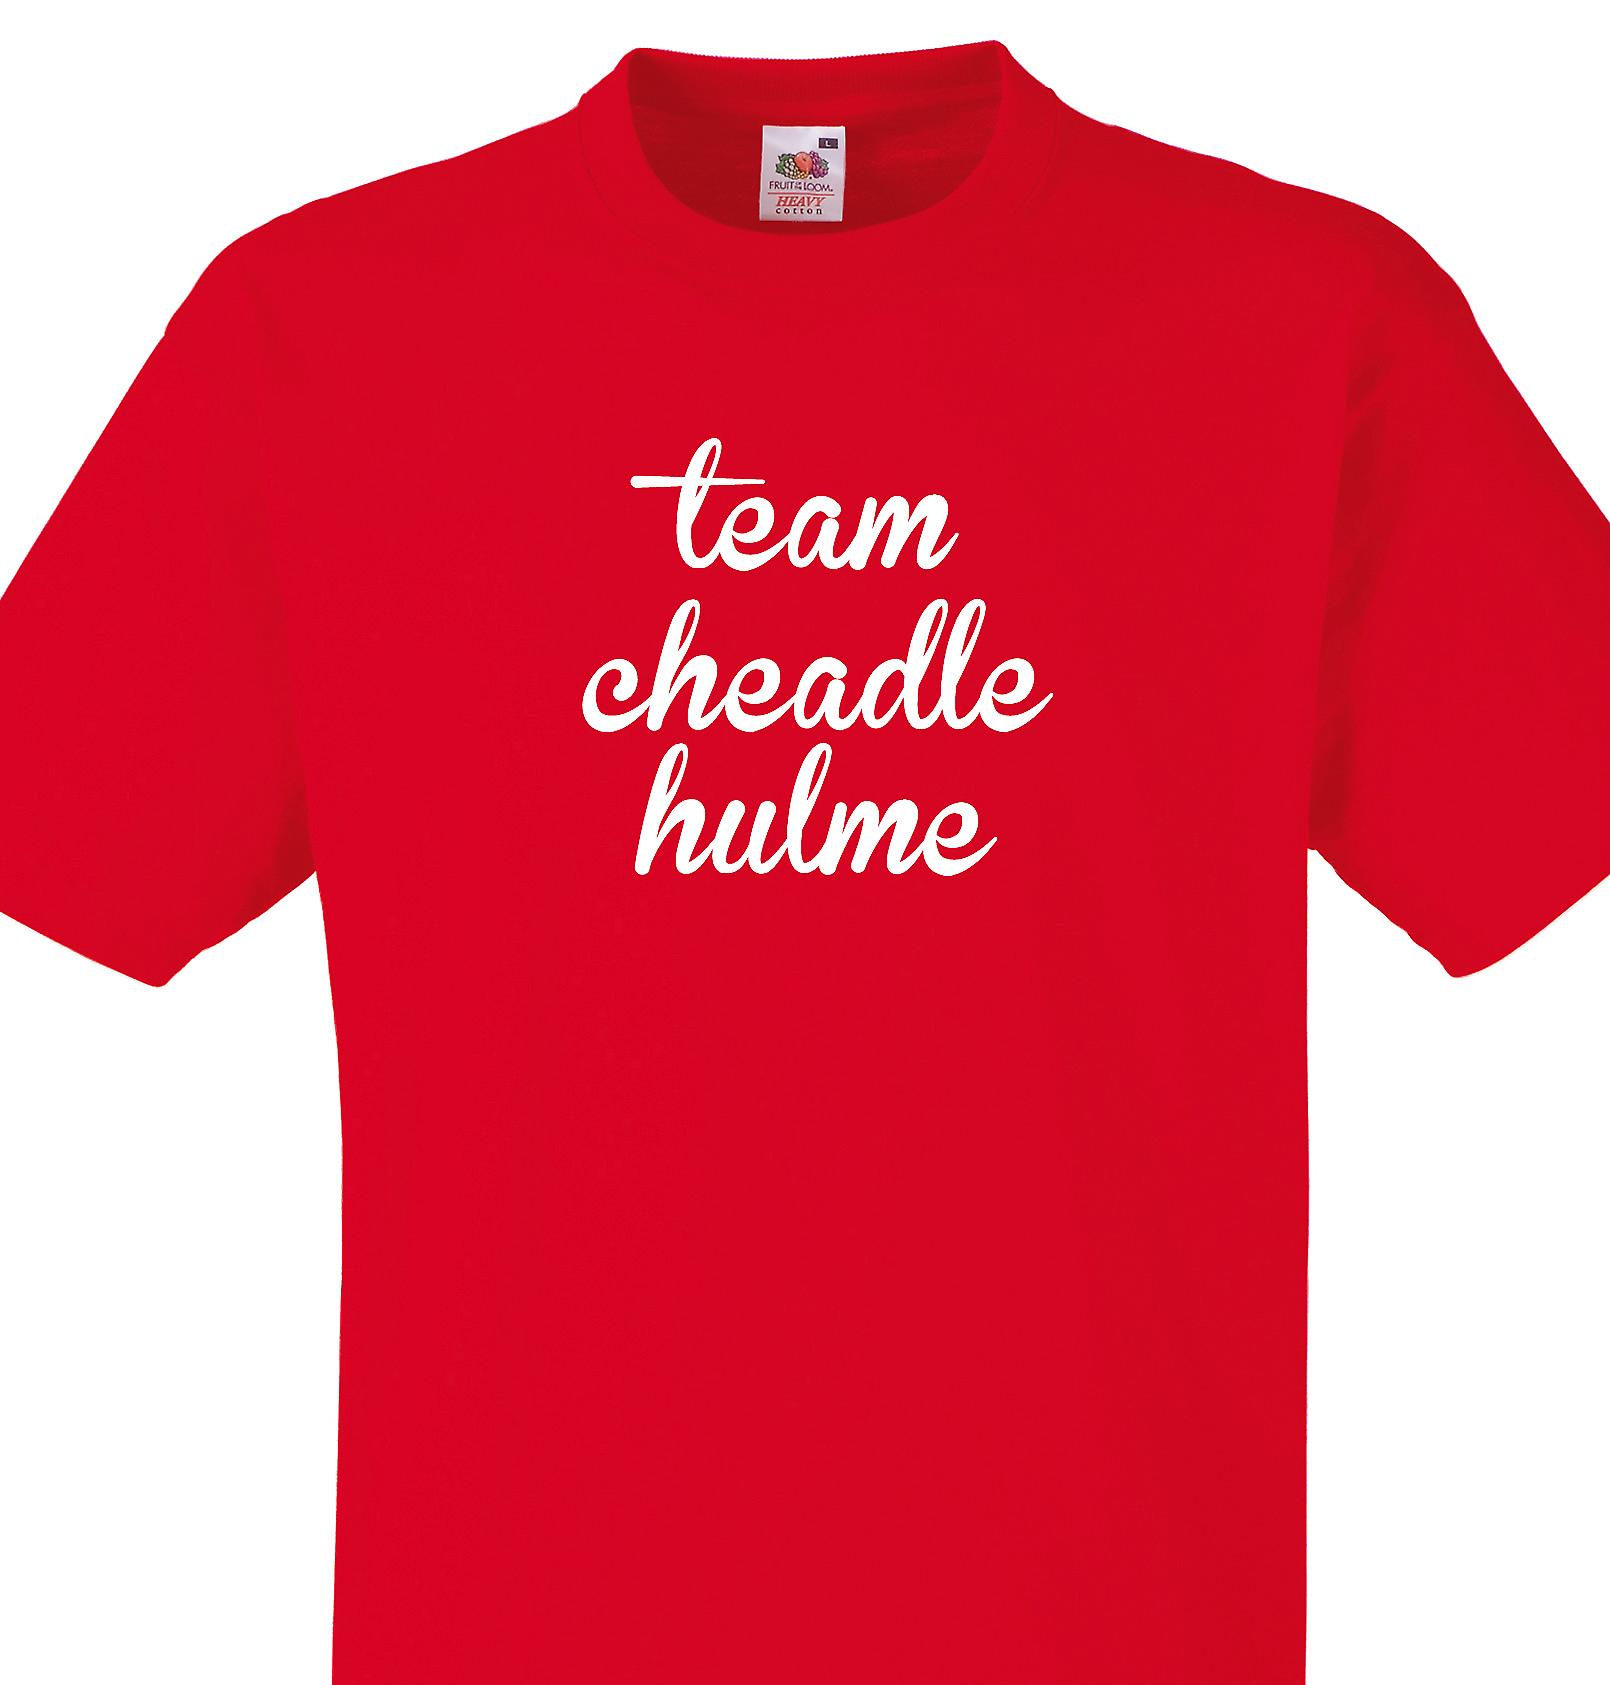 Team Cheadle hulme Red T shirt